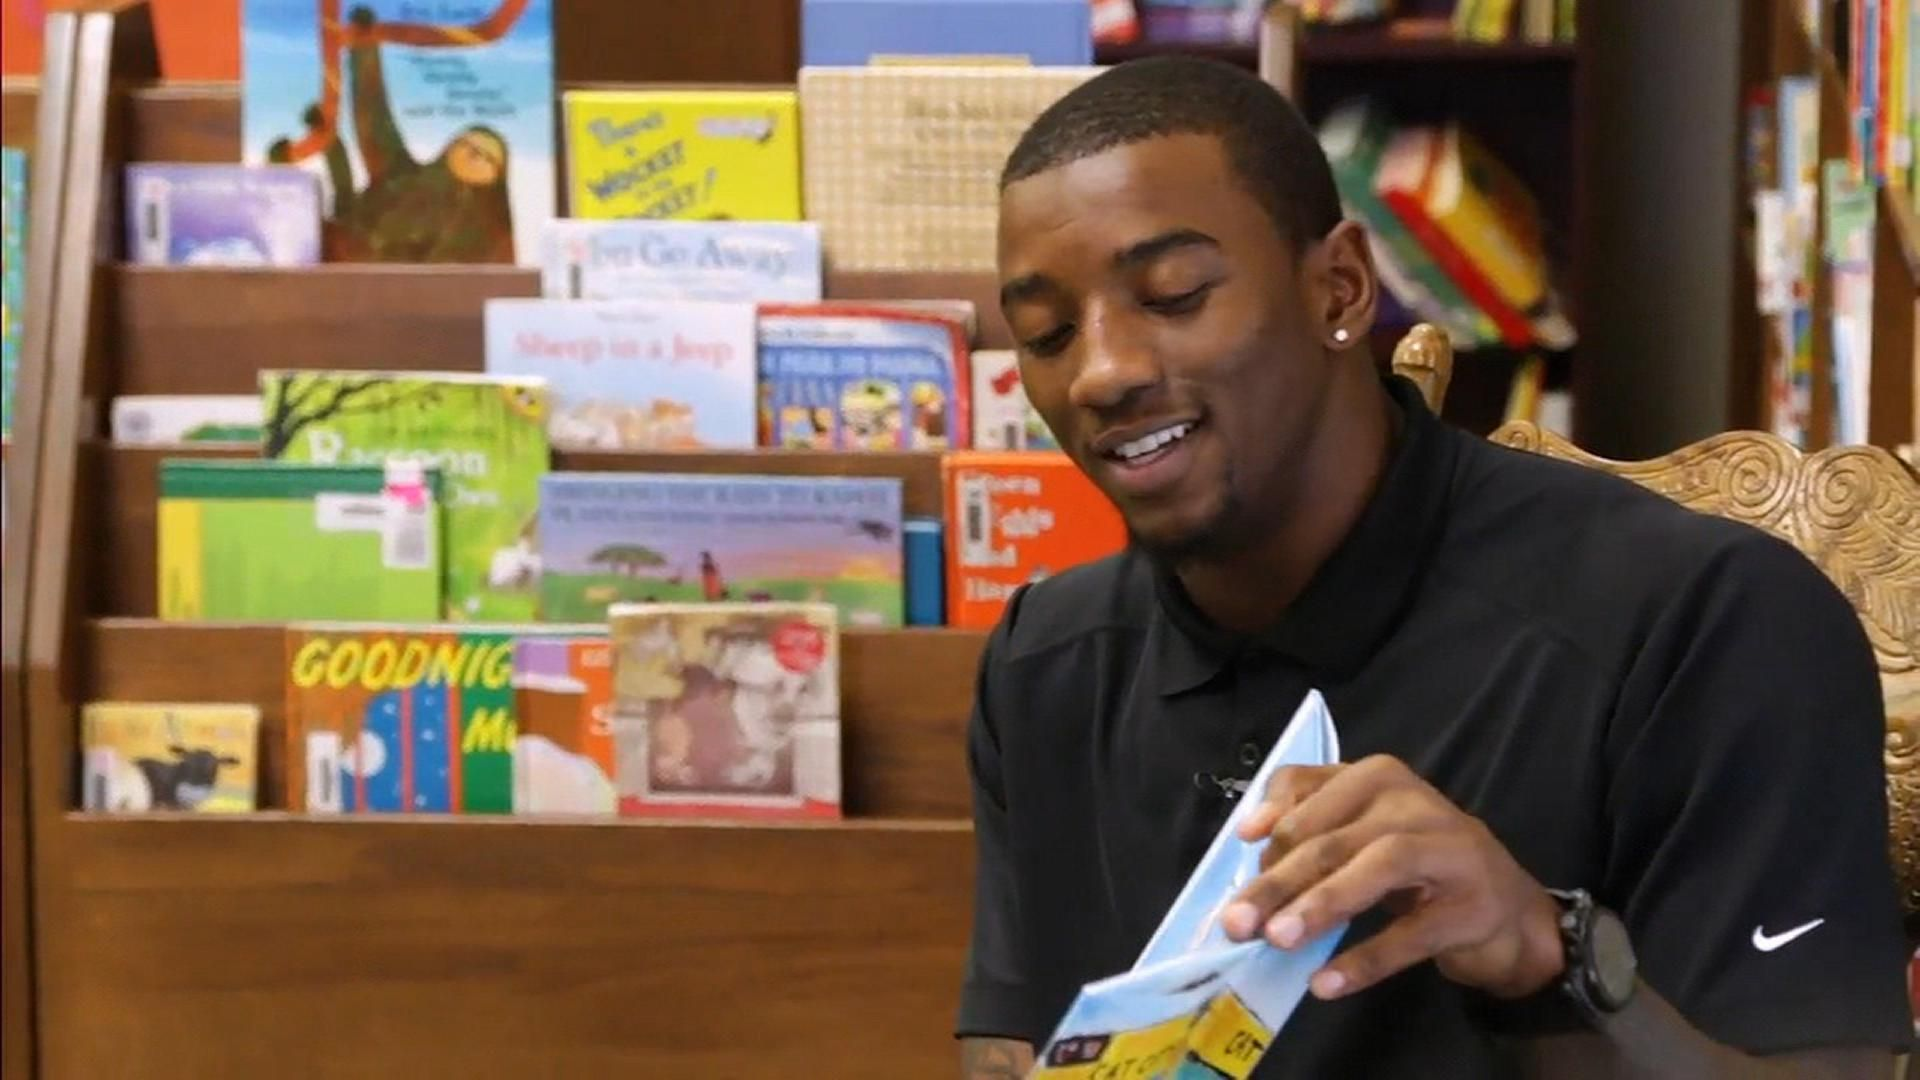 UGA WR's love of reading inspires others